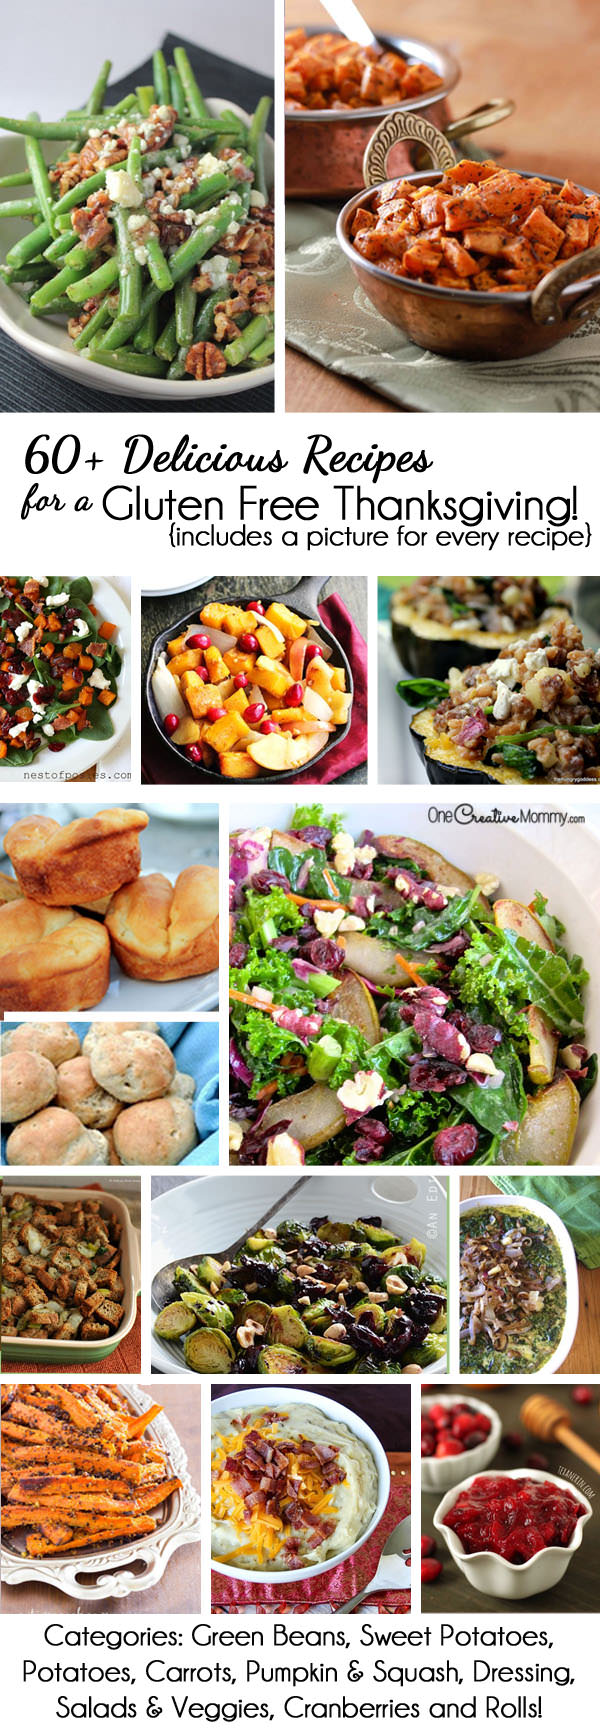 60+ Delicious Side Dish Recipes for a Perfect Gluten Free Thanksgiving Dinner {OneCreativeMommy.com} Arranged by category with a photo for every recipe! Plan your meal today.